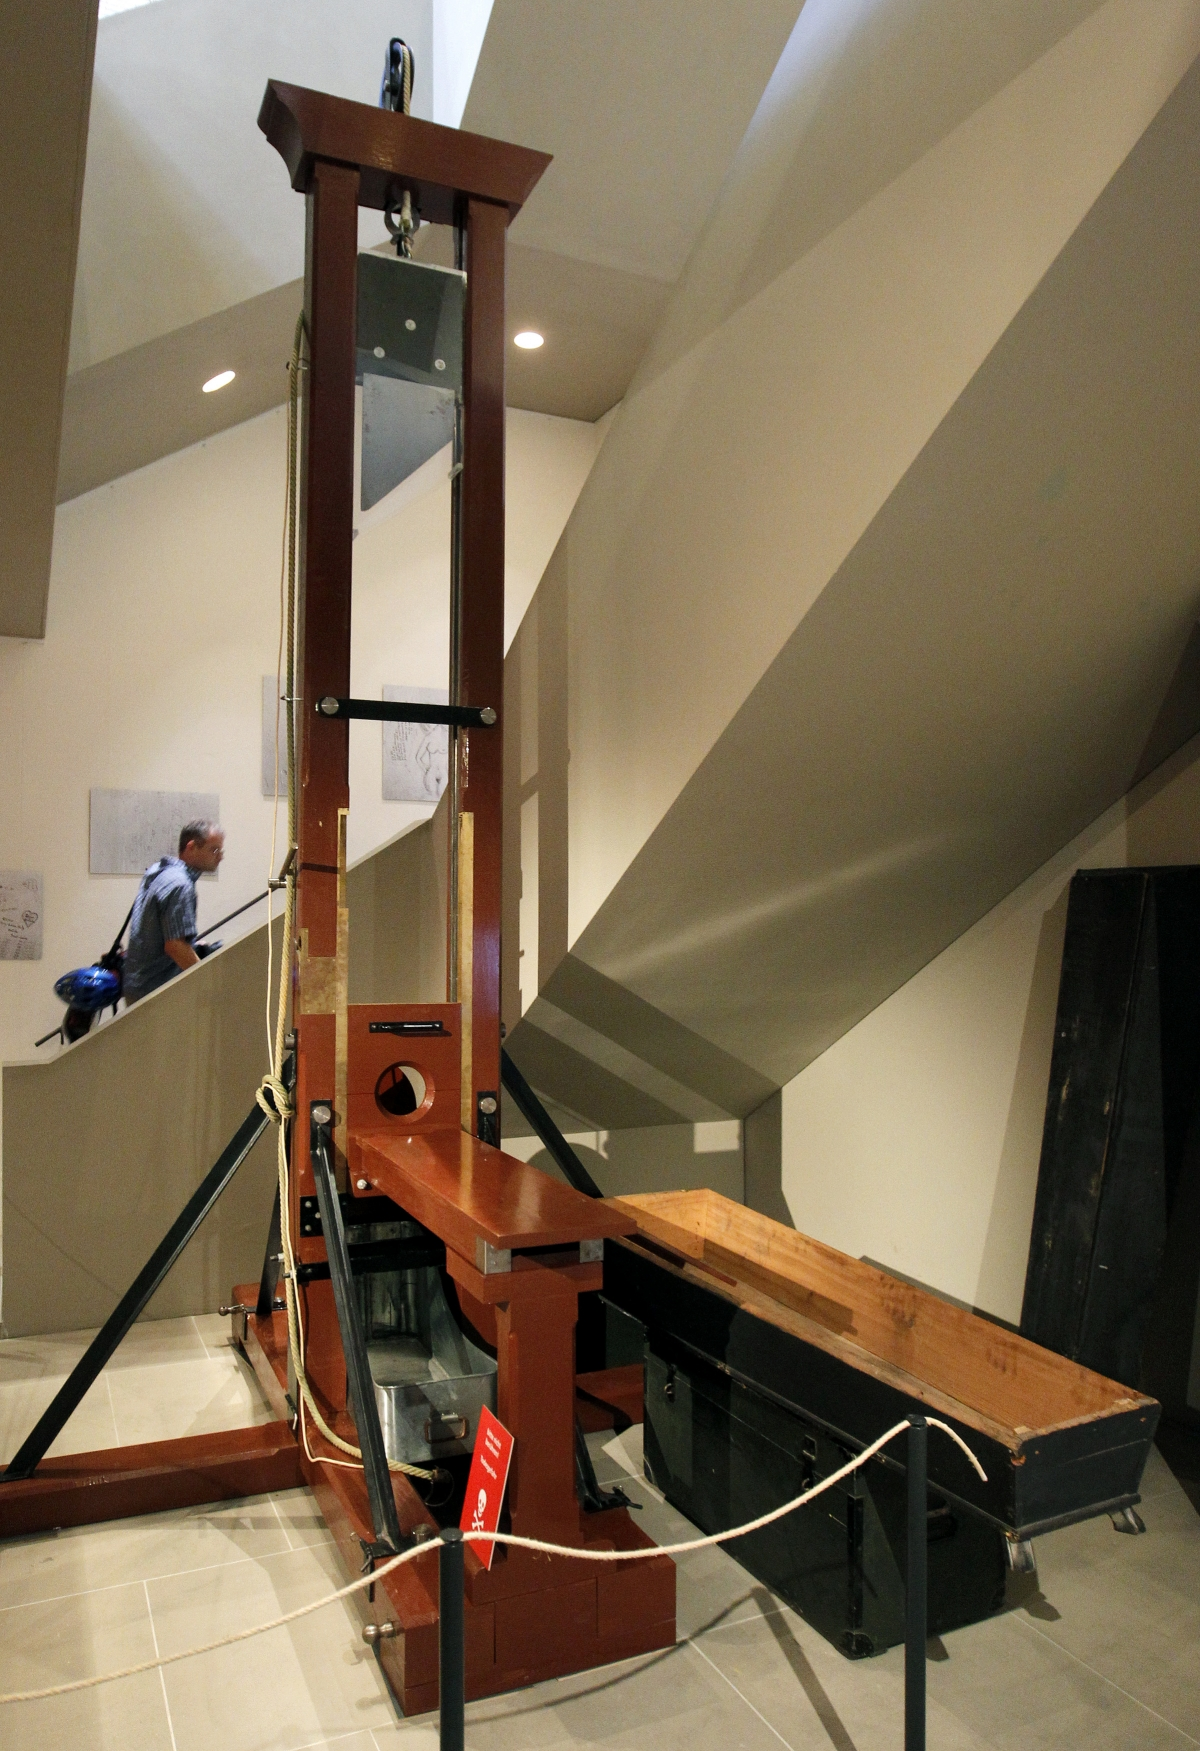 Reproduction of a guillotine in the Historiches Museum, Basel.